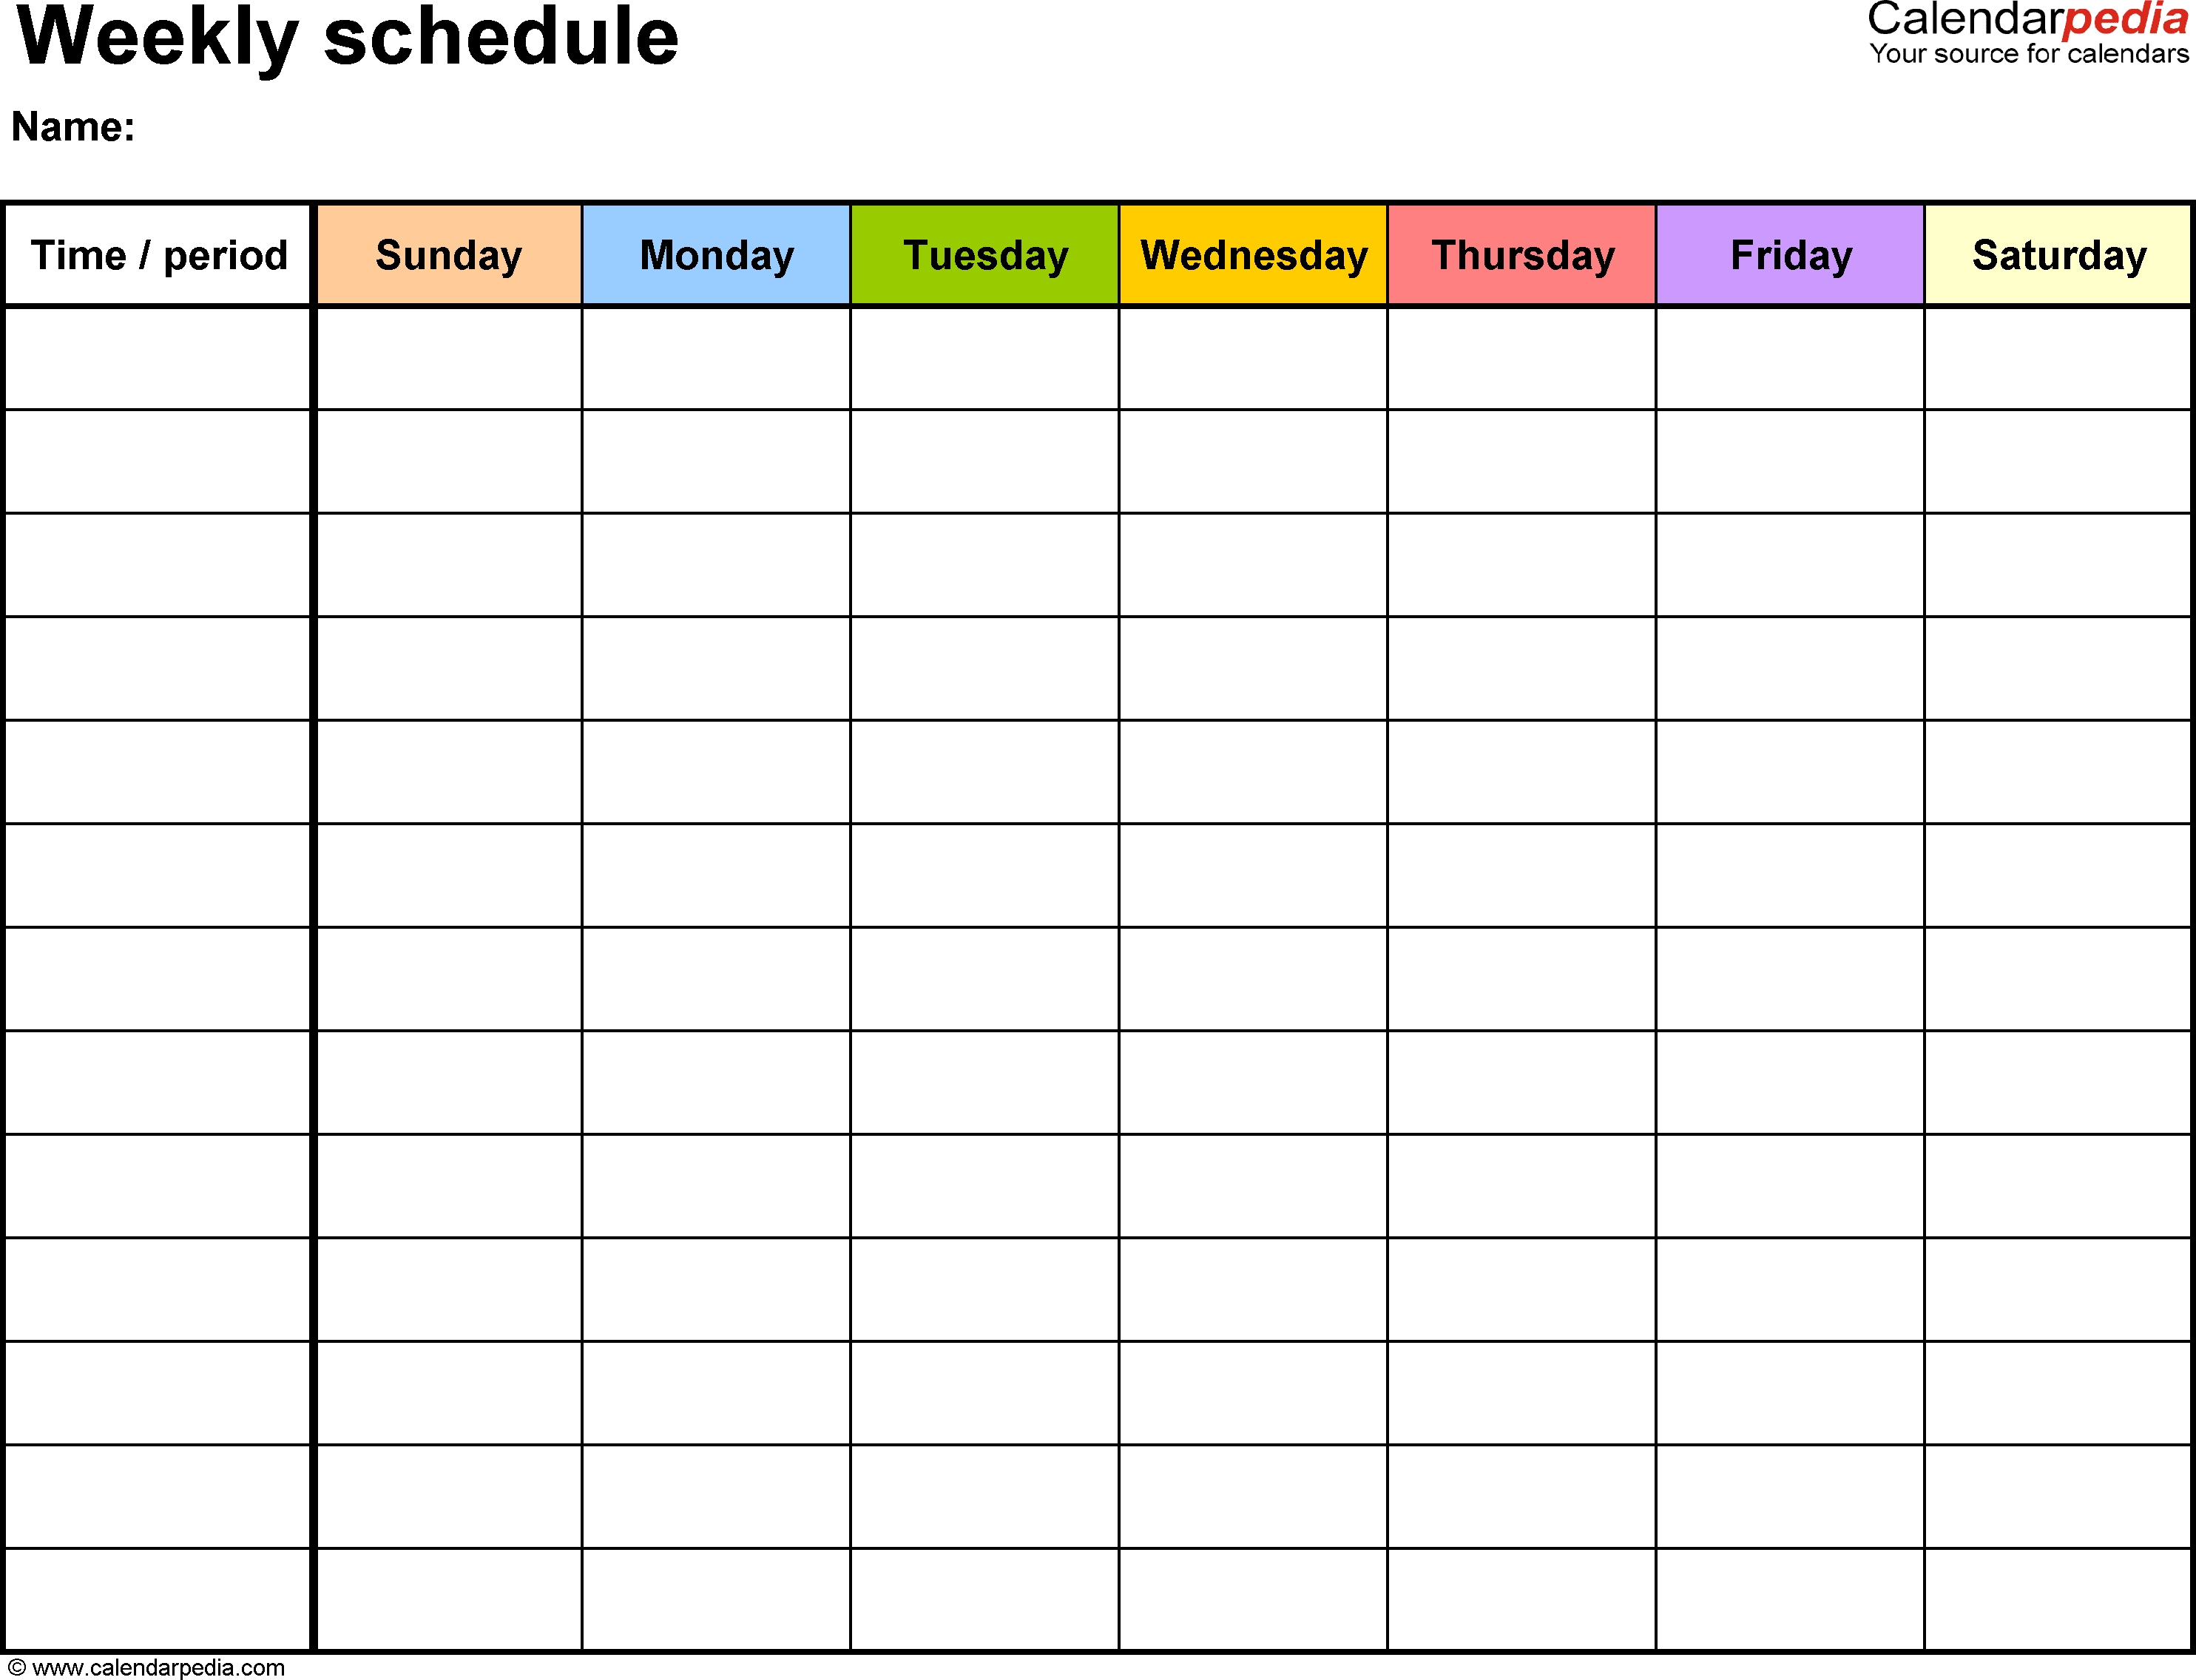 Free Weekly Schedule Templates For Word - 18 Templates  Printable Weekly Calendar Monday Through Friday